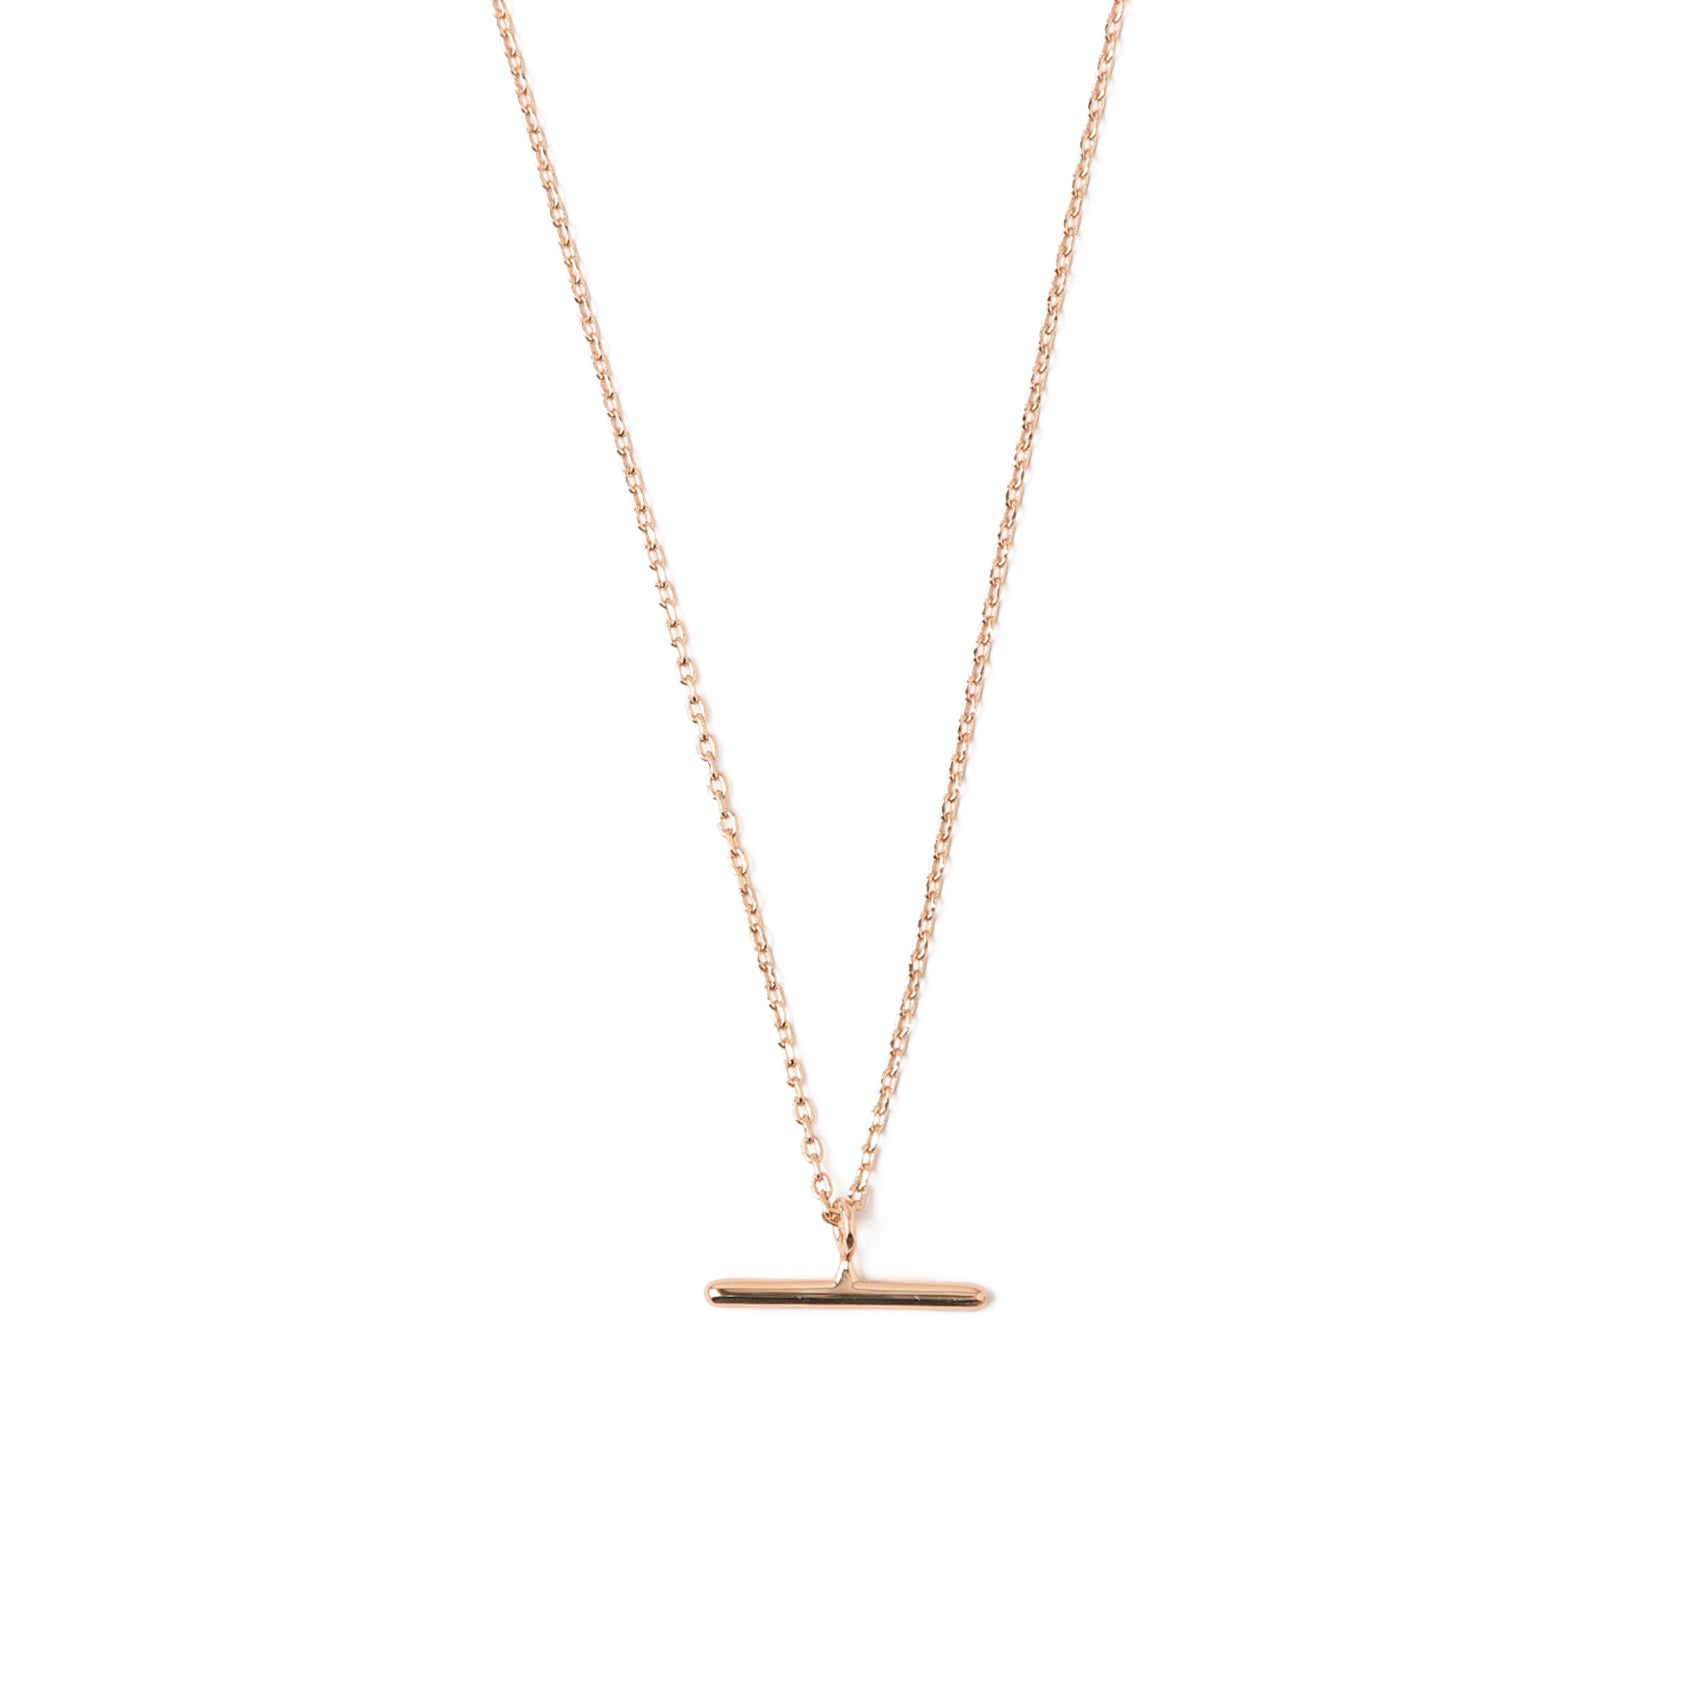 T-Bar Ditsy Charm Necklace - Rose Gold